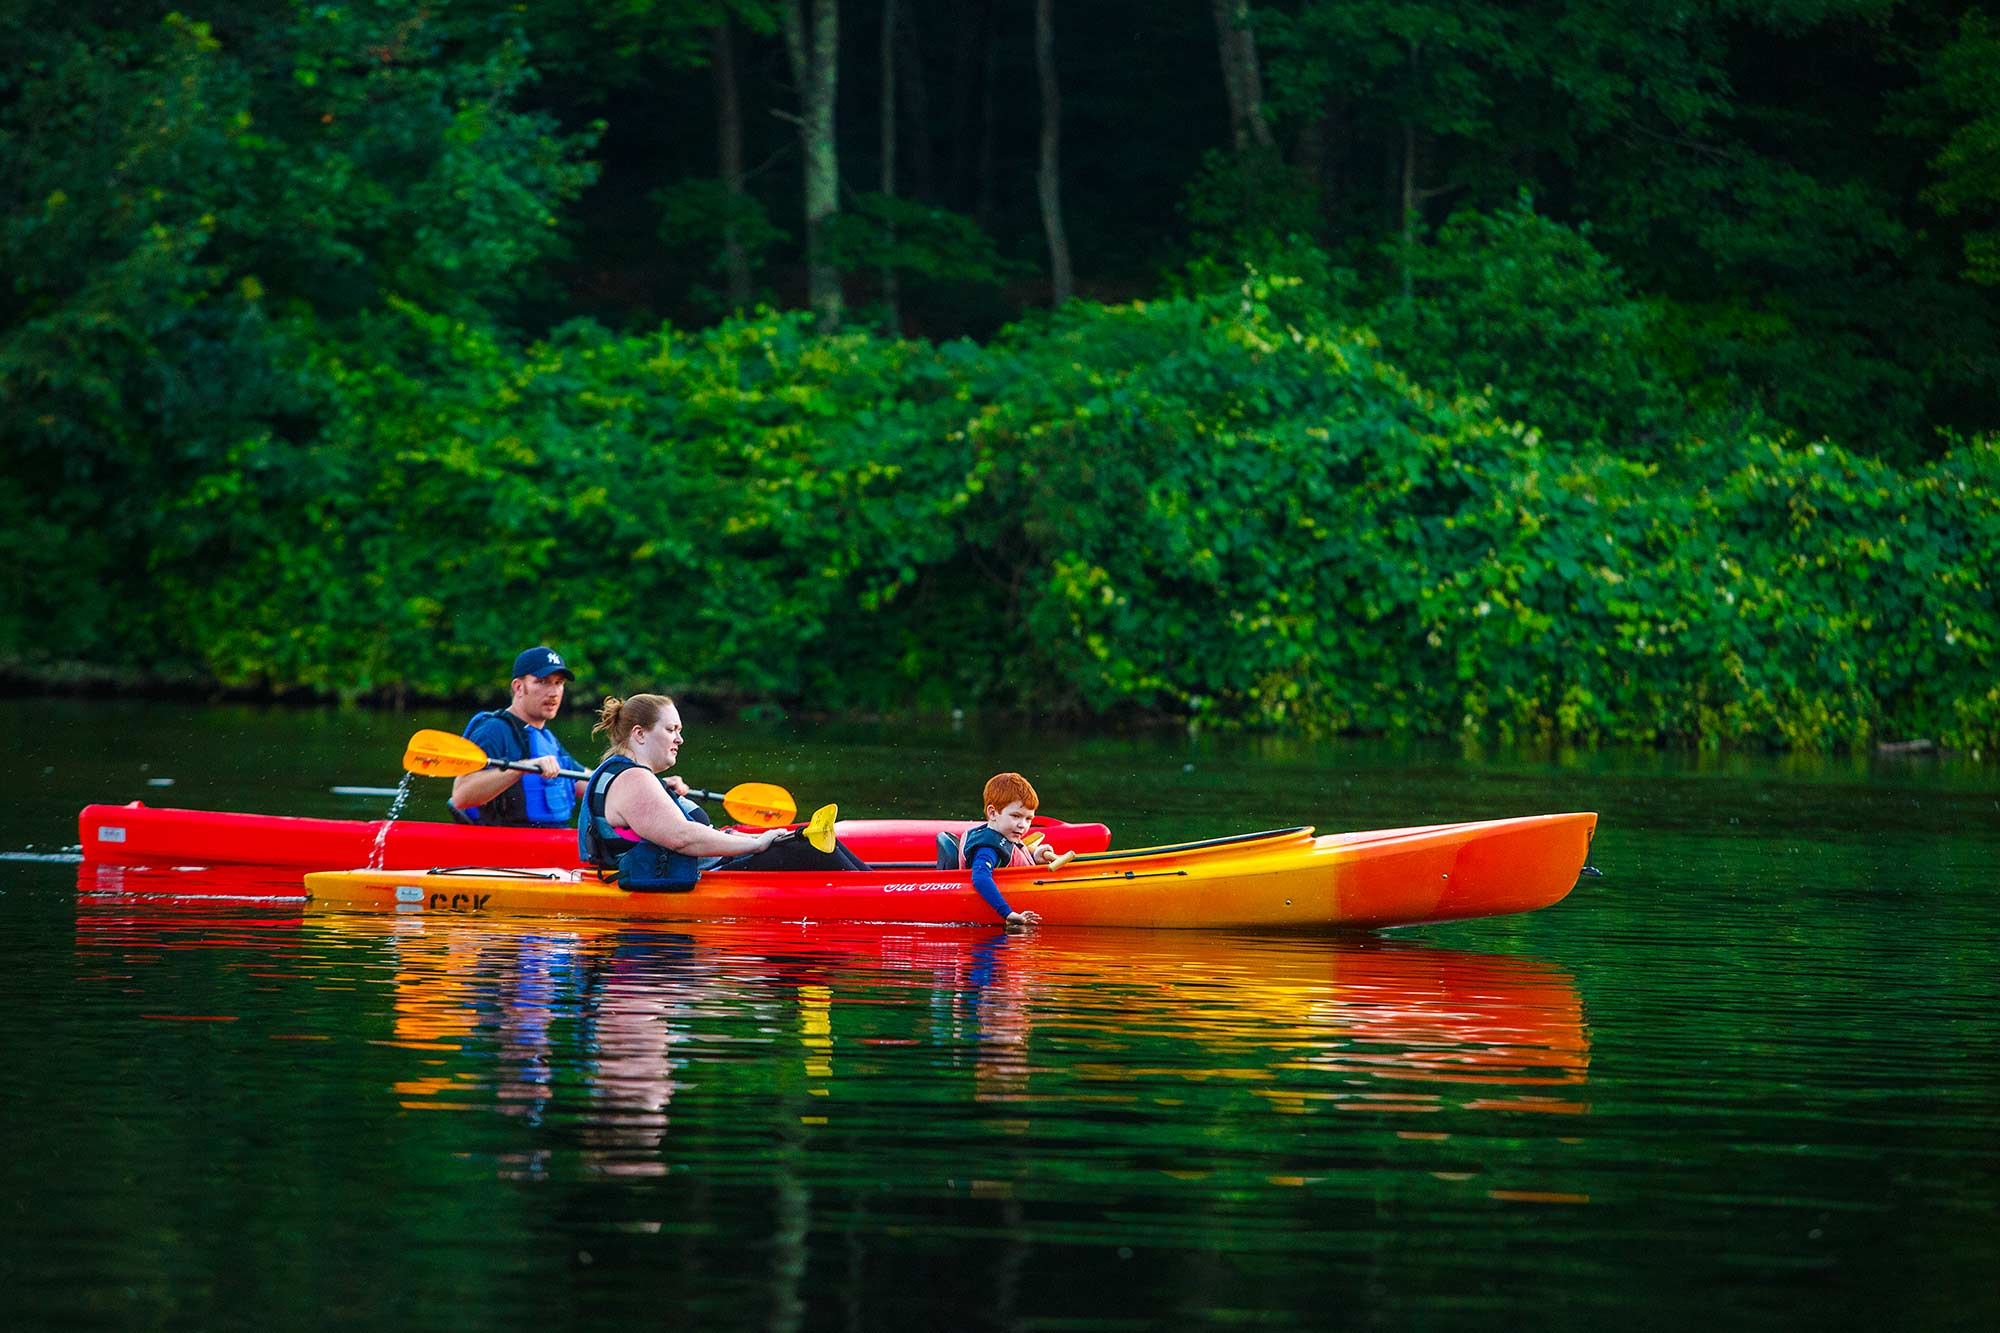 Kayaking Family, Collinsville, CT - 8/1/15